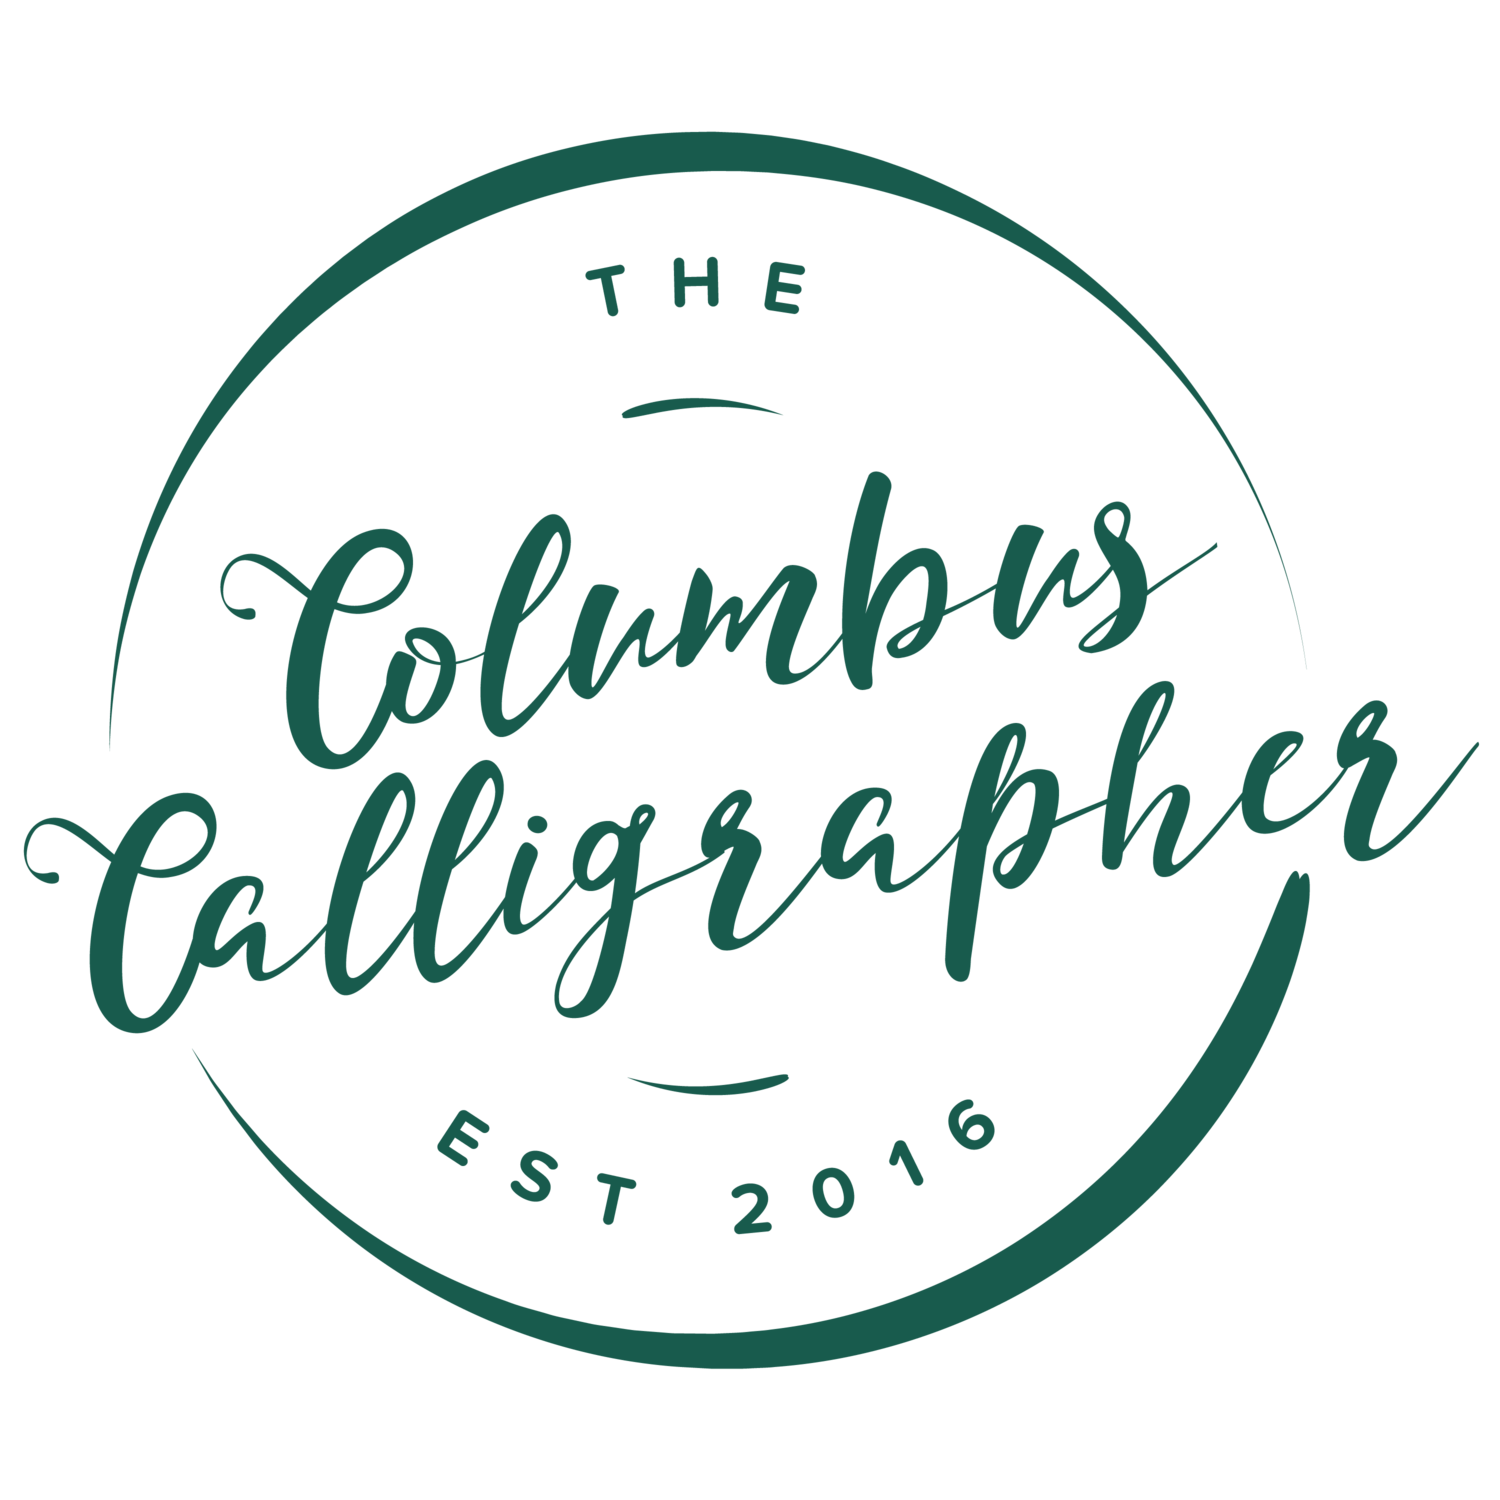 The Columbus Calligrapher